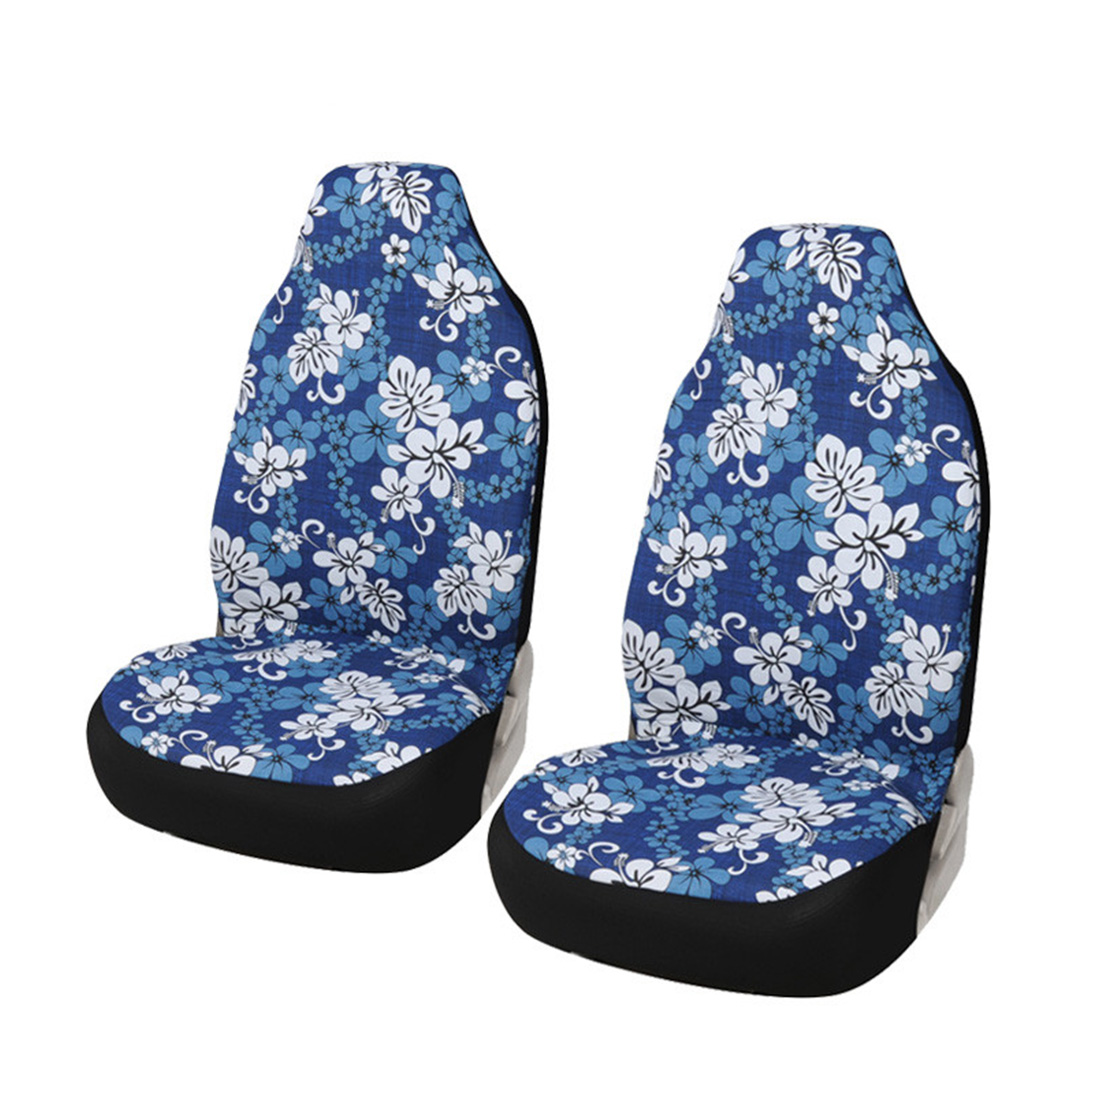 Dewtreetali 2pcs Car Bucket Seat Covers Blue Flower Print Cotton Car Accessories Universal Fit Front Seat Covers Protectors